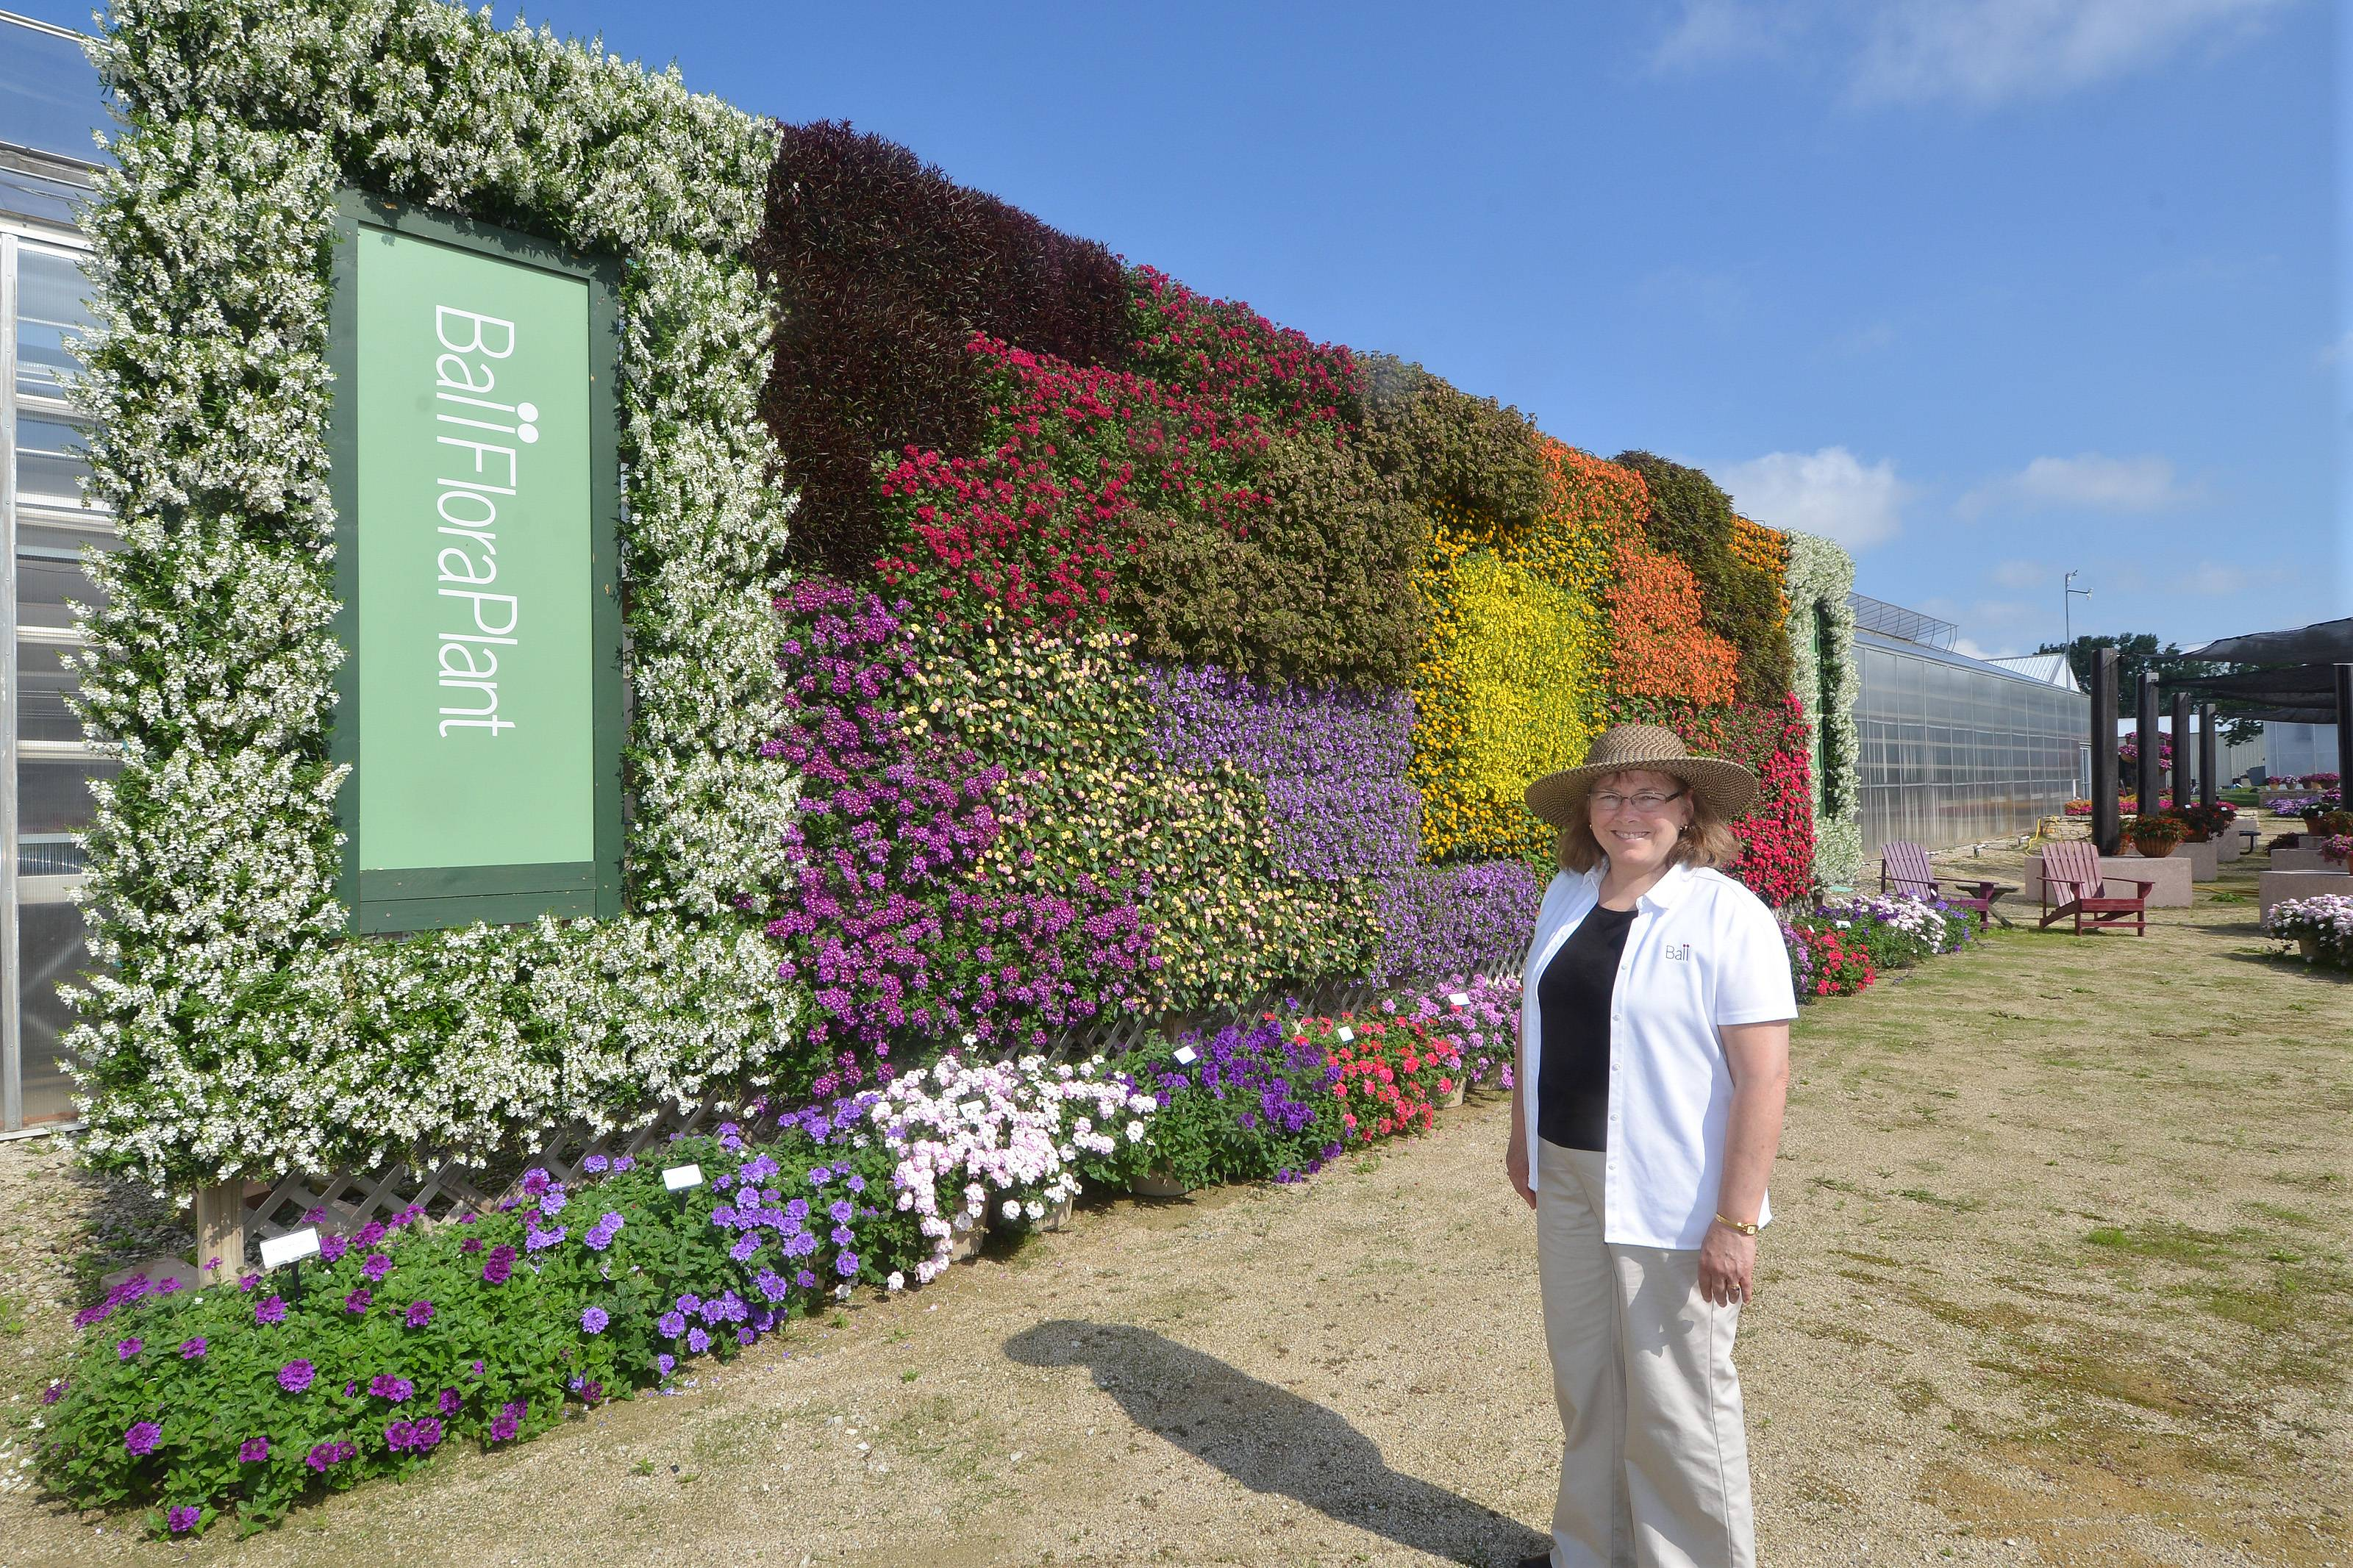 Susan Schmitz, education and trials manager at Ball Horticultural Company, shows off the vertical wall of plants in the Ball FloraPlant & Selecta Container Showcase, which highlights cutting-grown plants, including EnduraScape Verbena, Conga and MiniFamous Calibrachoas and Bounce and Big Bounce Interspecific impatiens.